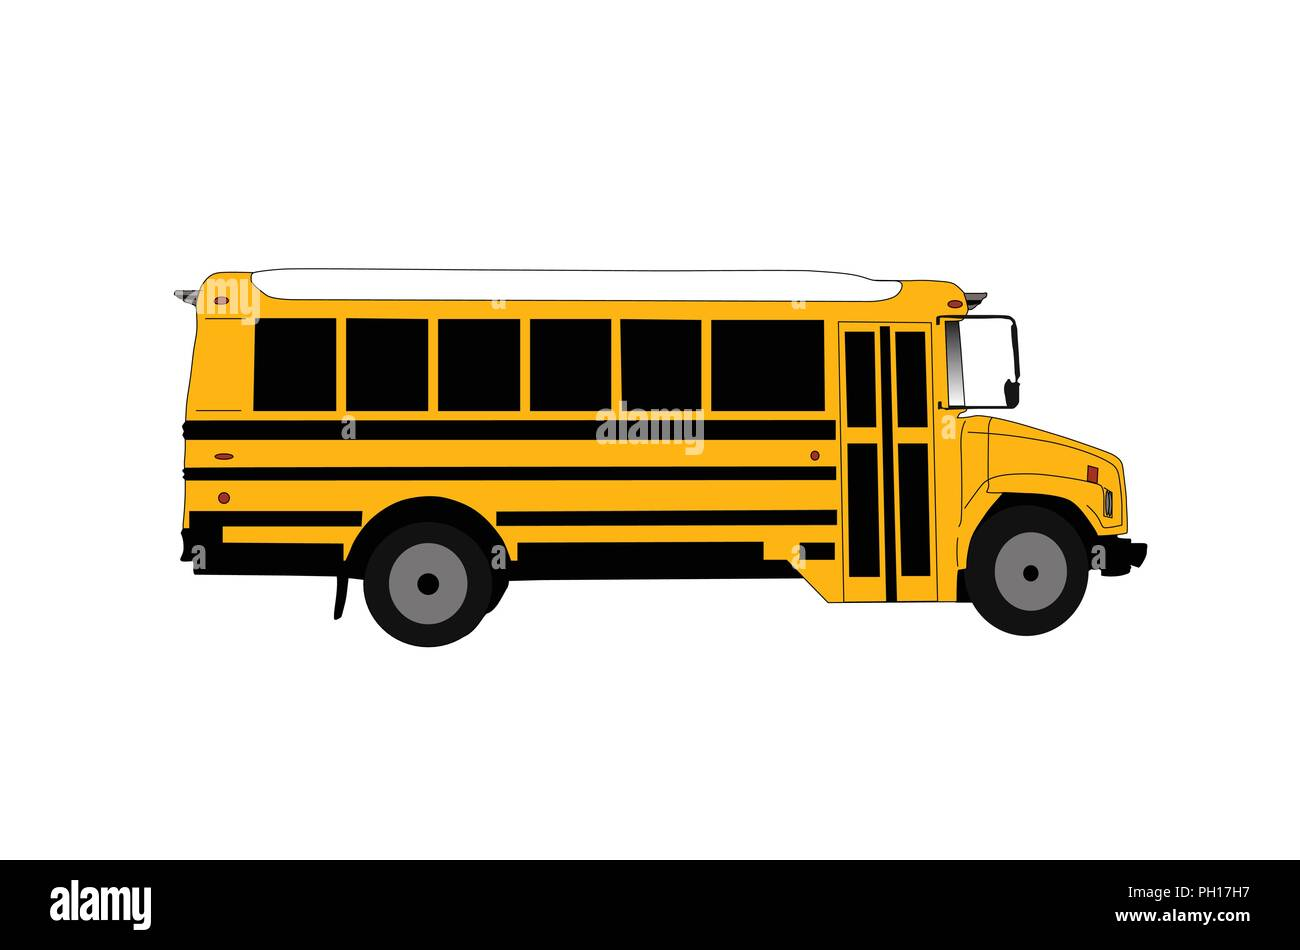 School bus isolated on white vector illustration. - Stock Image